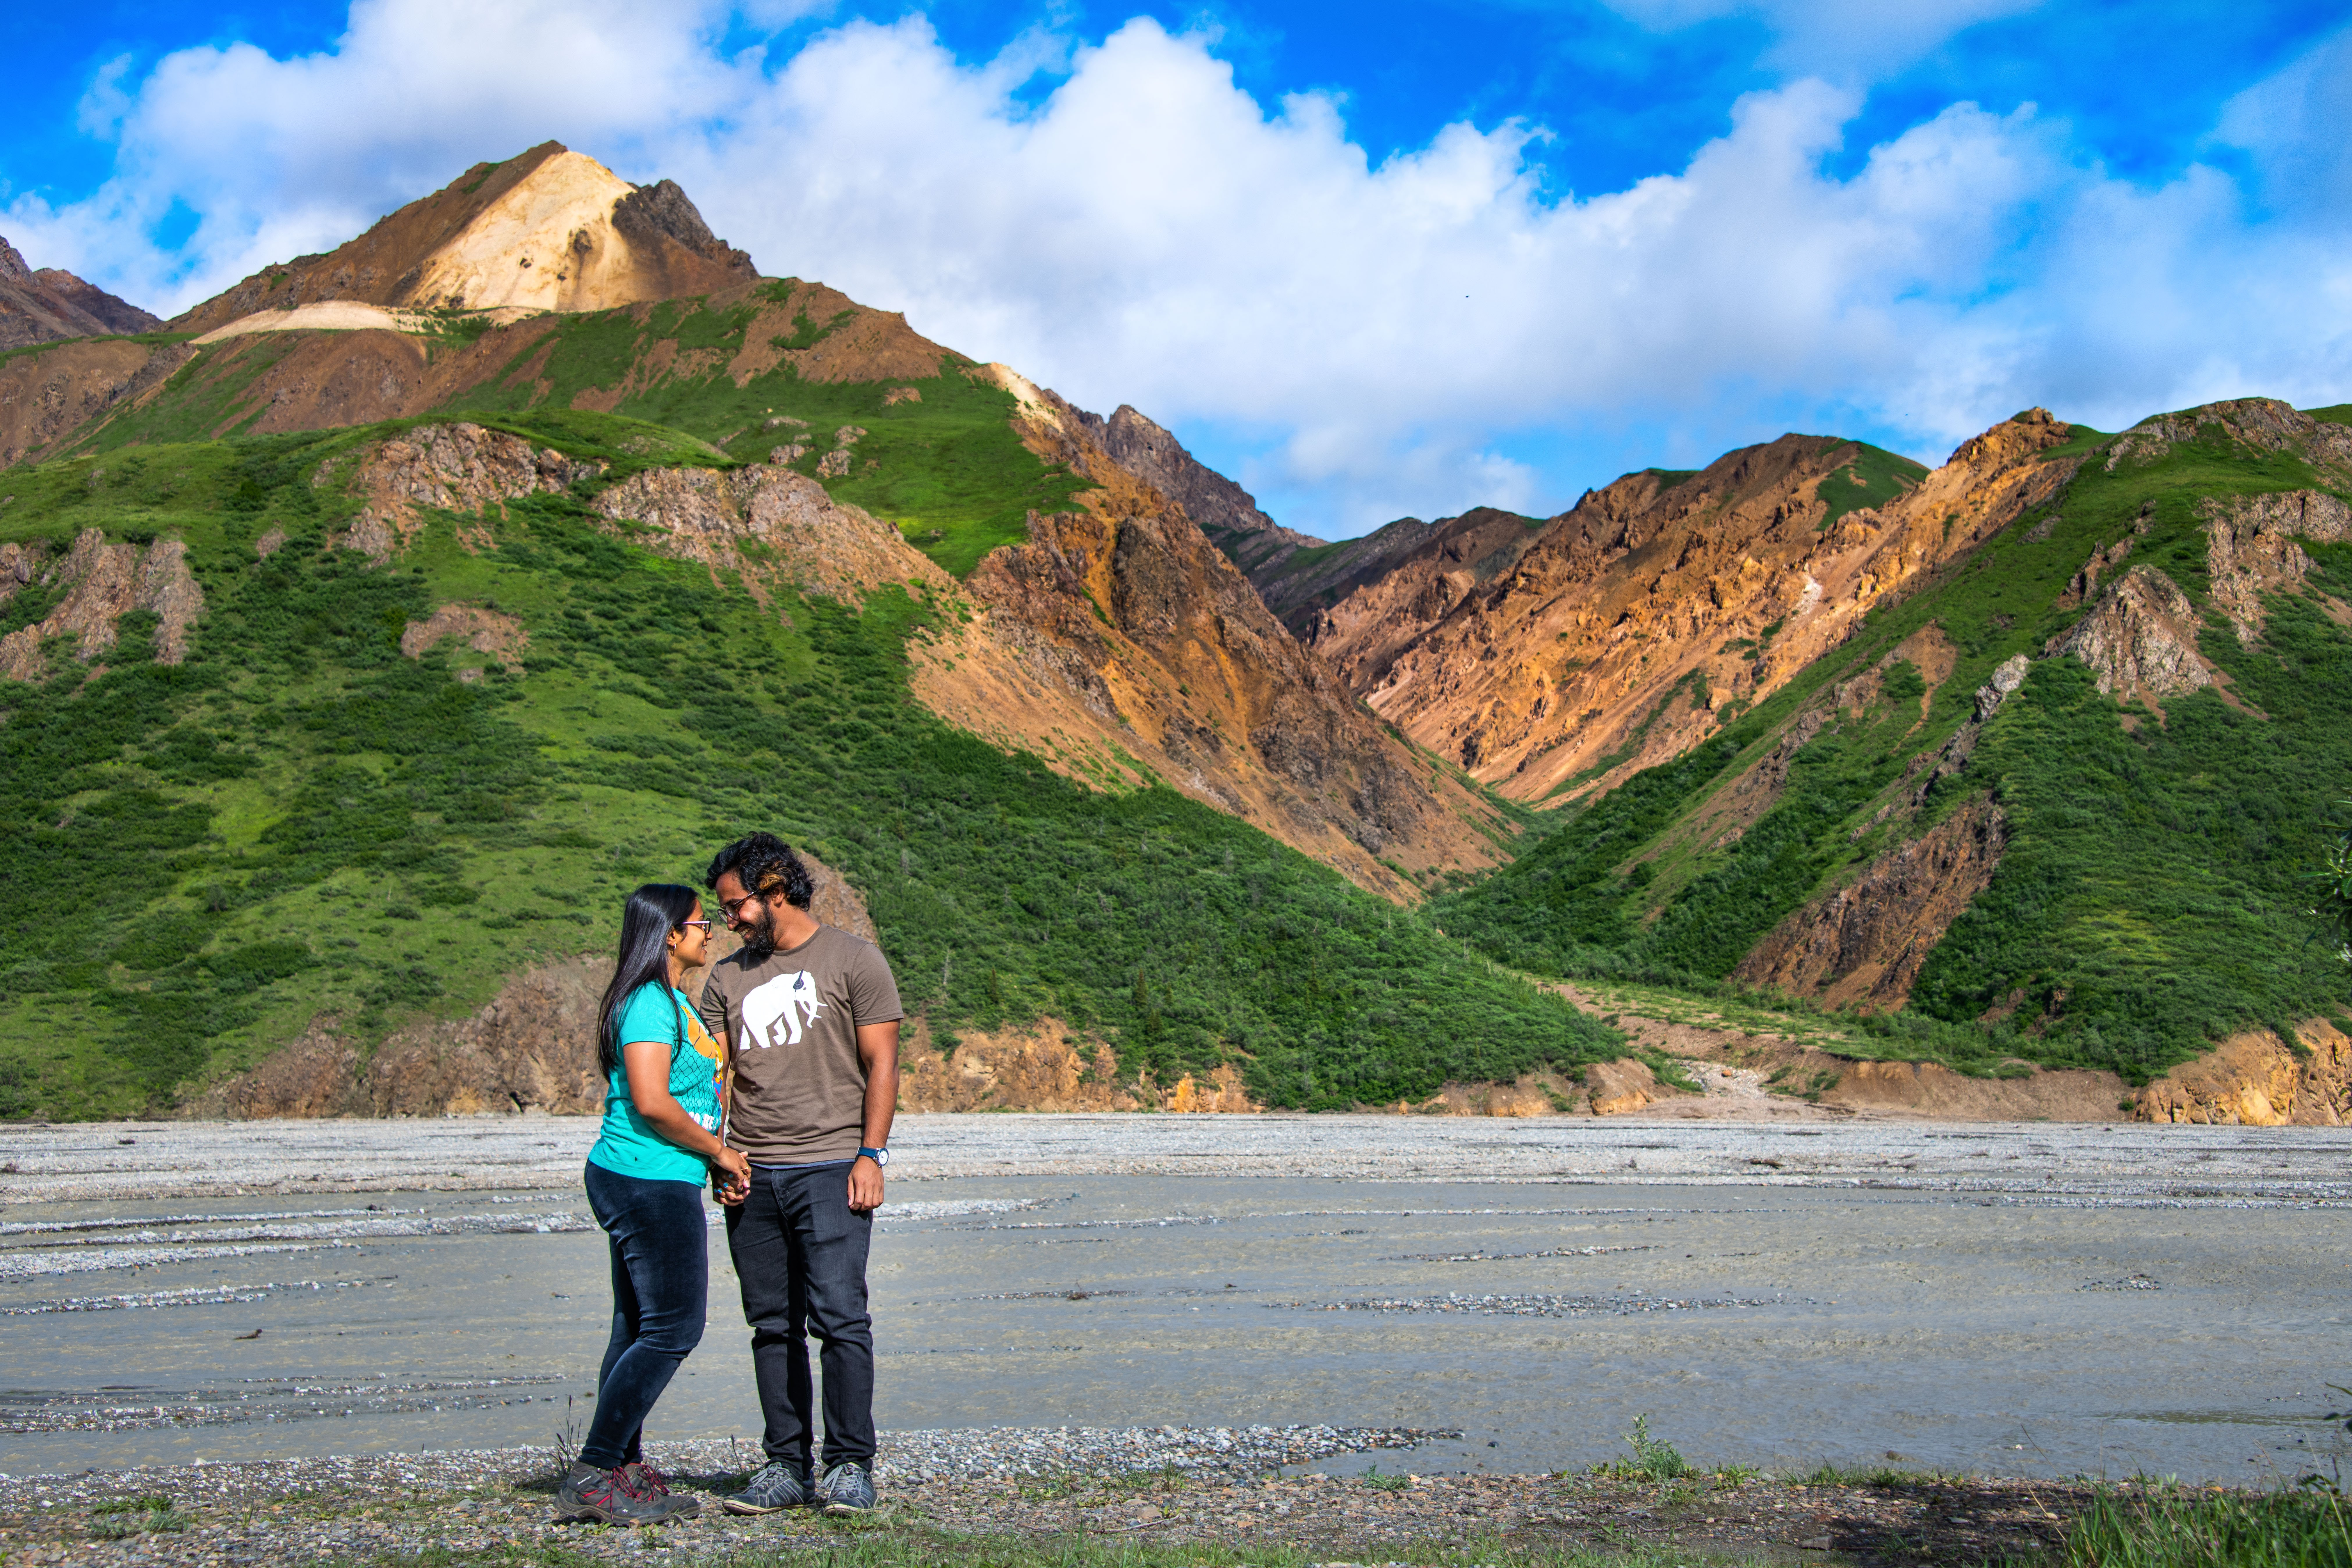 Shuttle bus tour to explore Denali National Park by Travel Anubhav